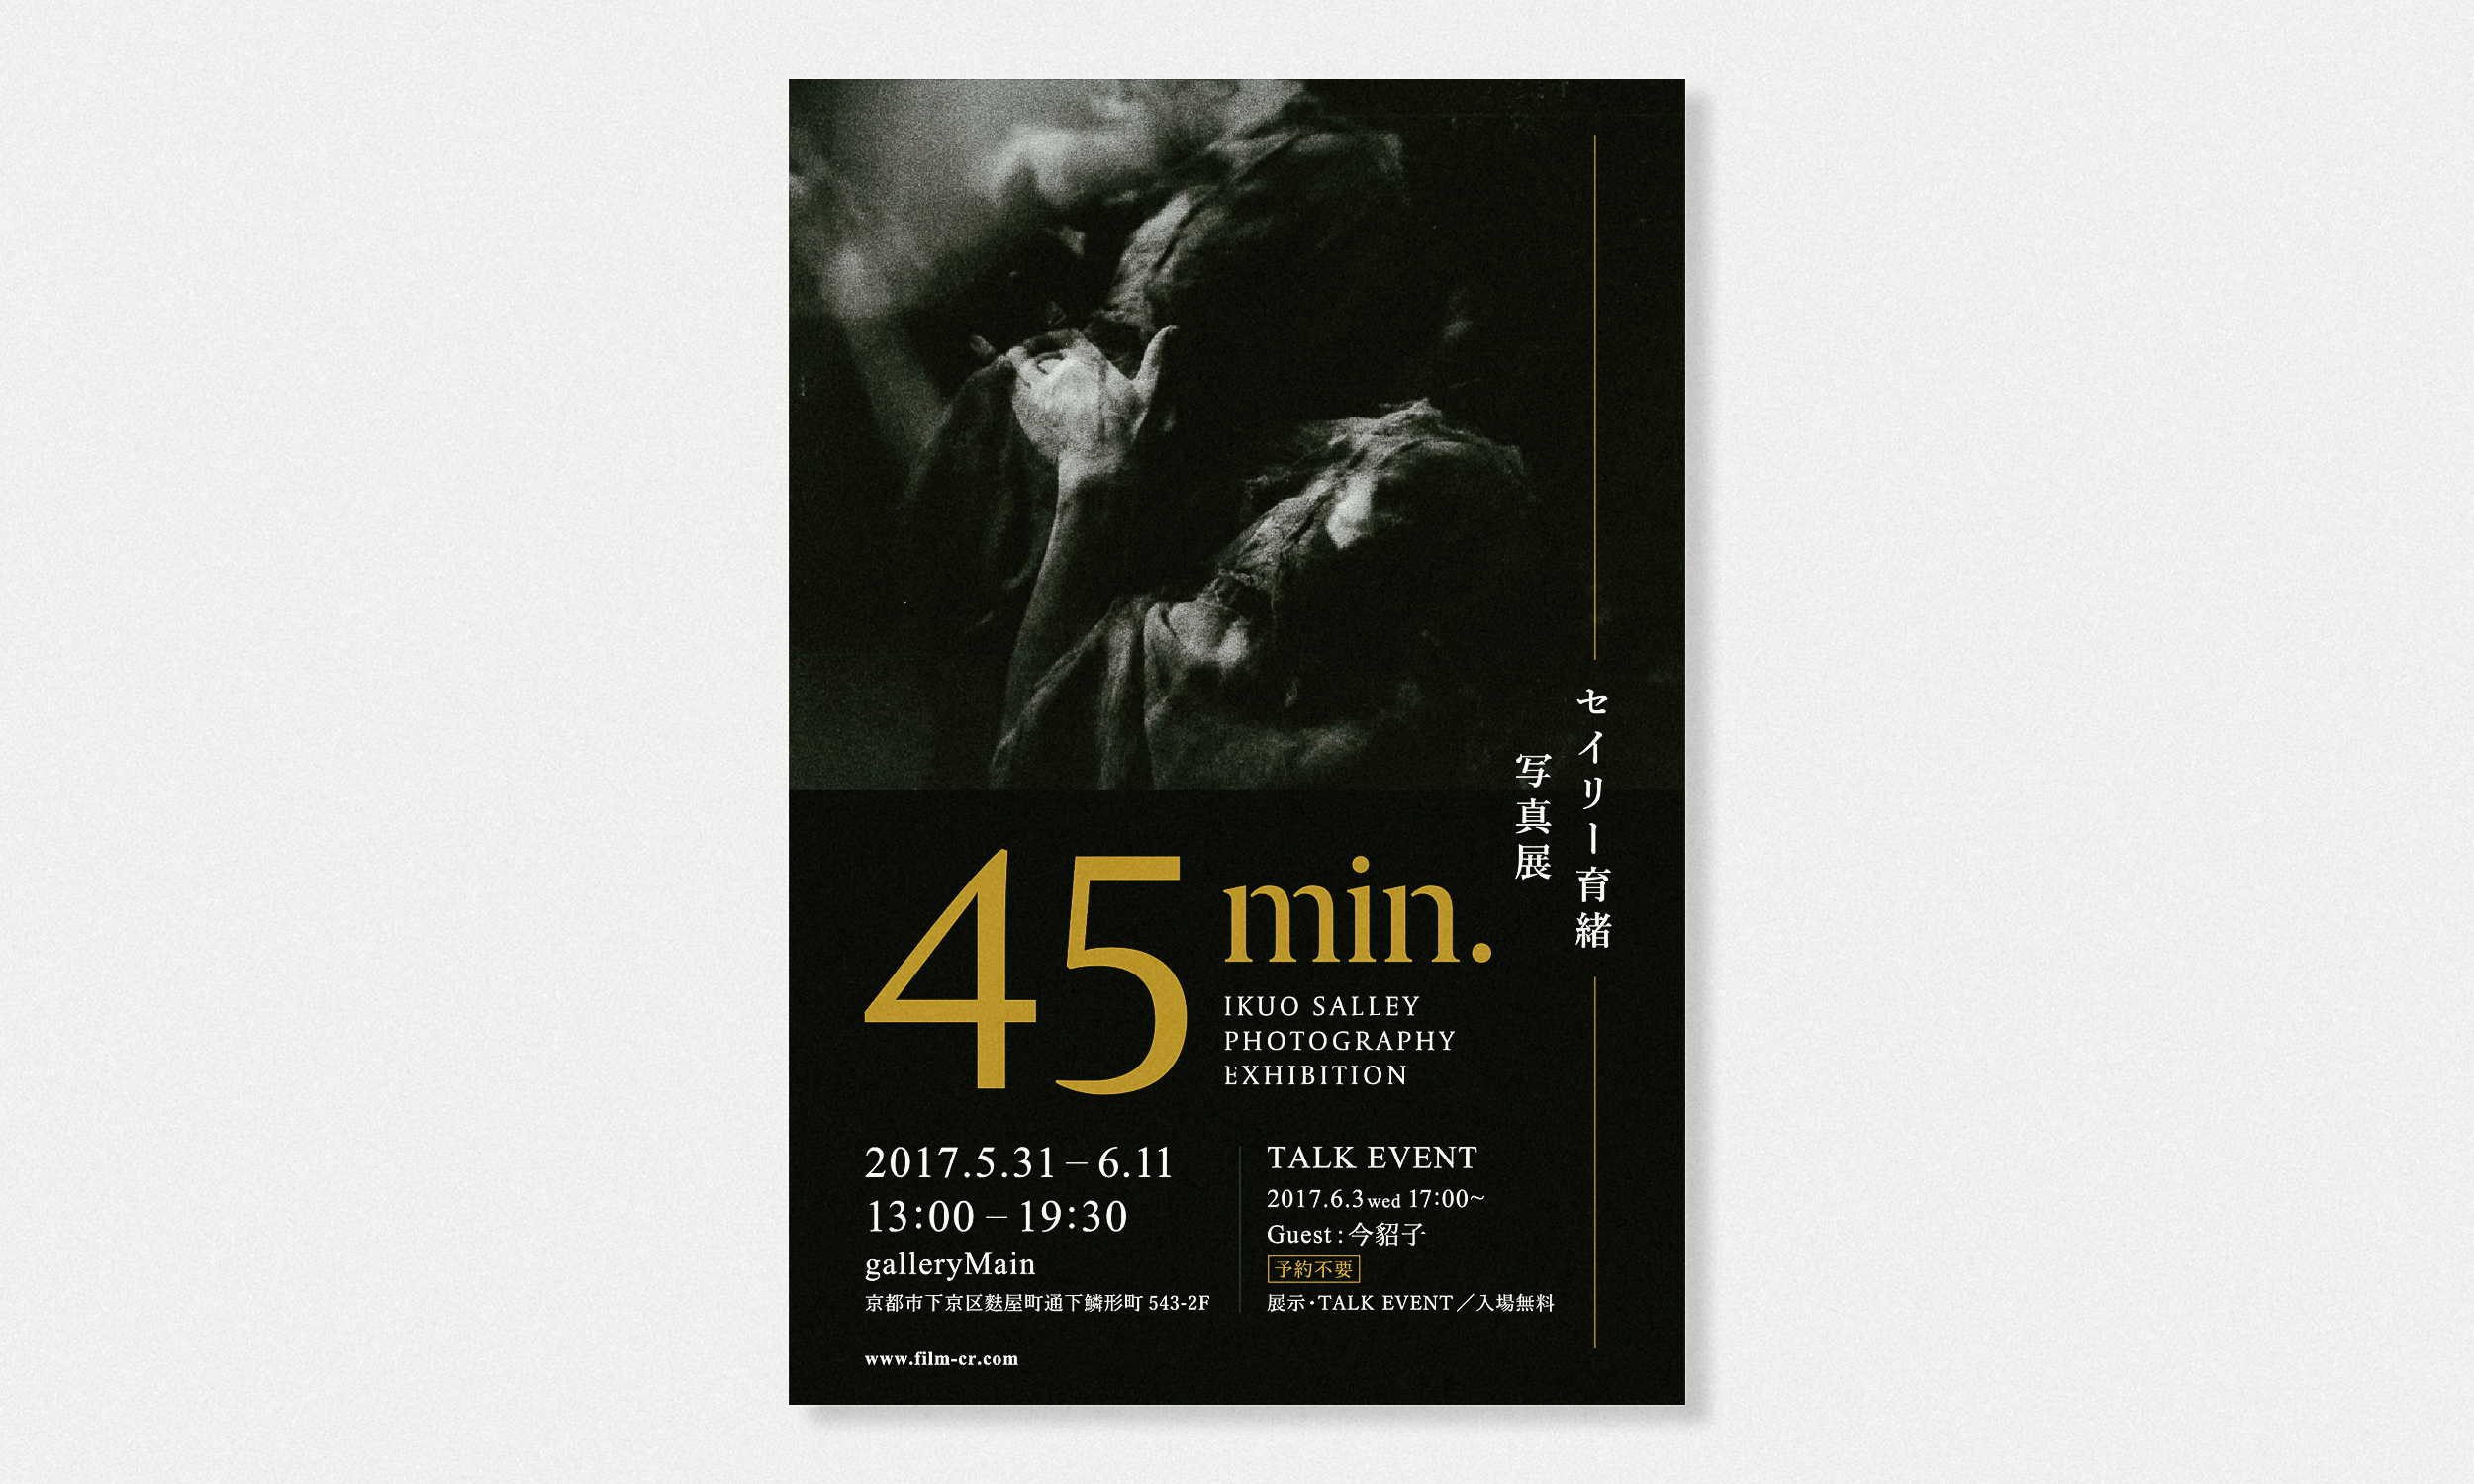 IKUO SALLEY PHOTOGRAPHY EXHIBITION 45min.